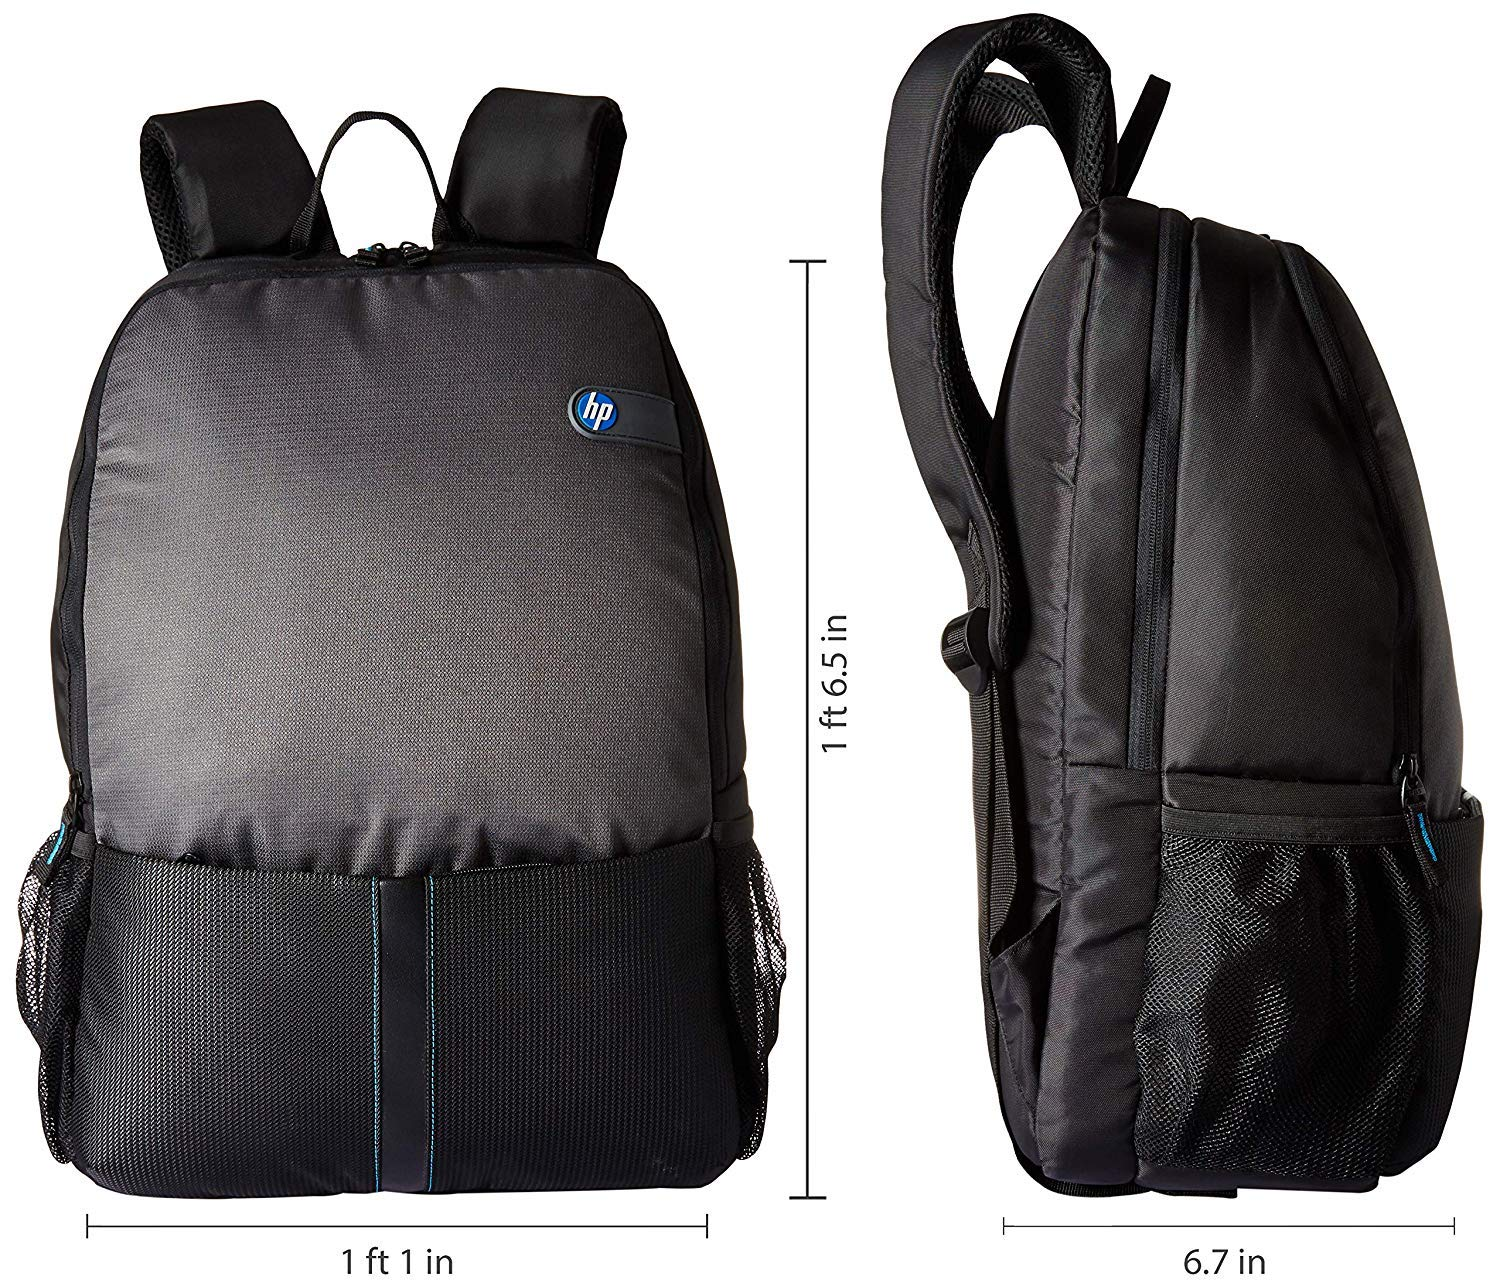 HP Express 27 ltrs Laptop Backpack for Upto 15 6-inch laptops